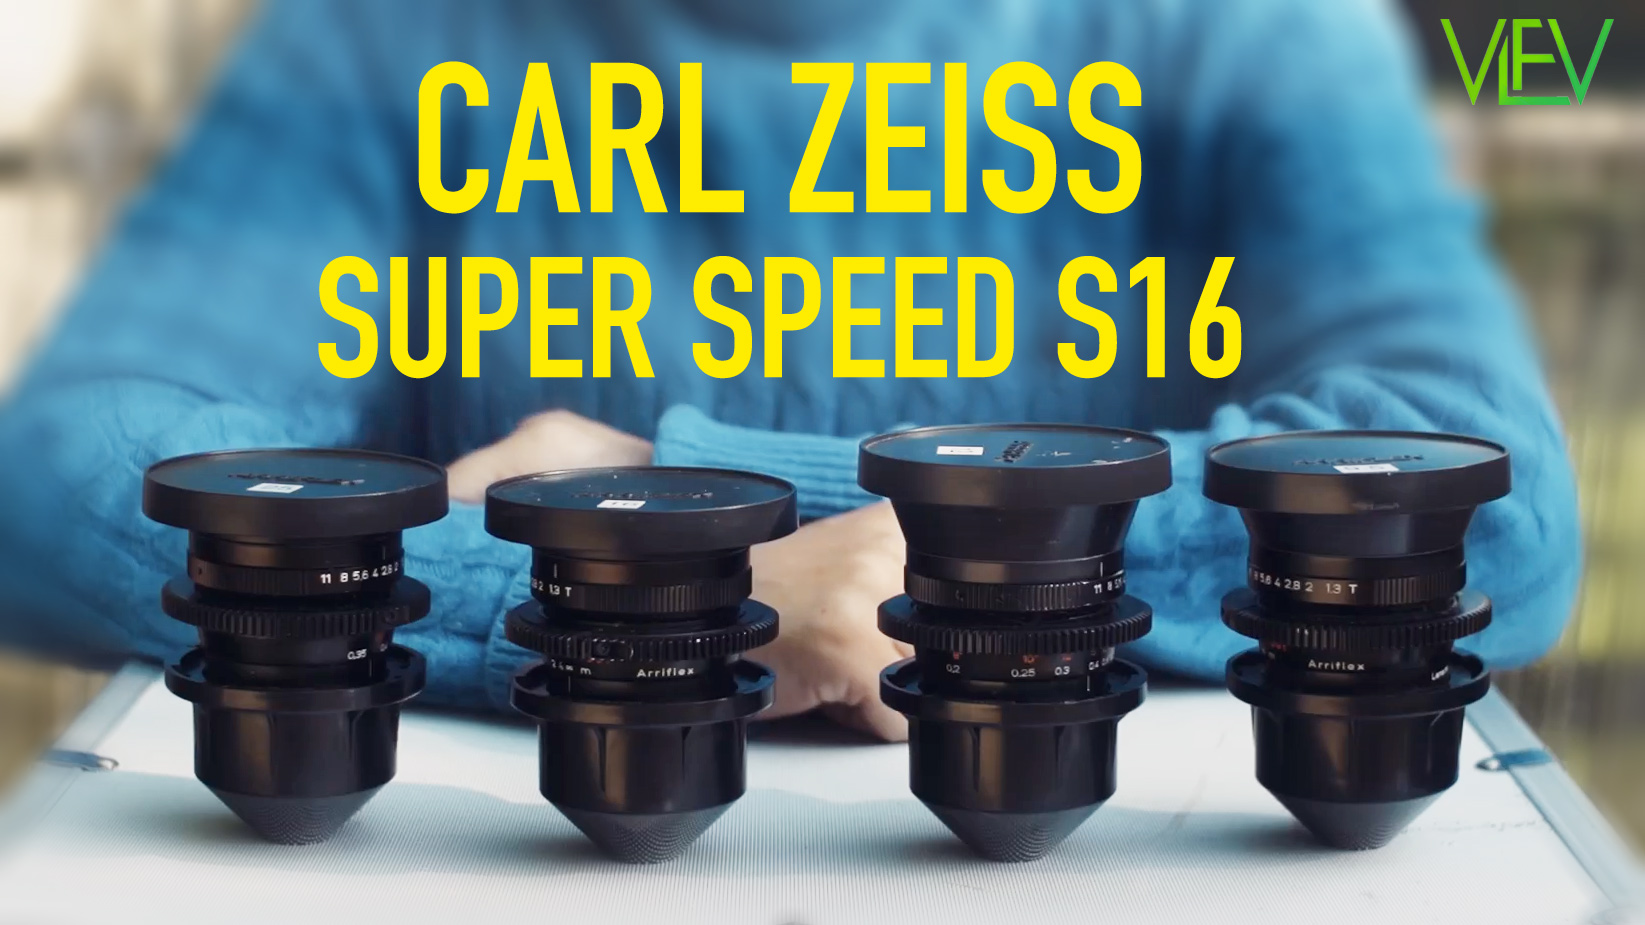 Carl Zeiss Super Speed S16 Cine Lenses | In-Depth Overview